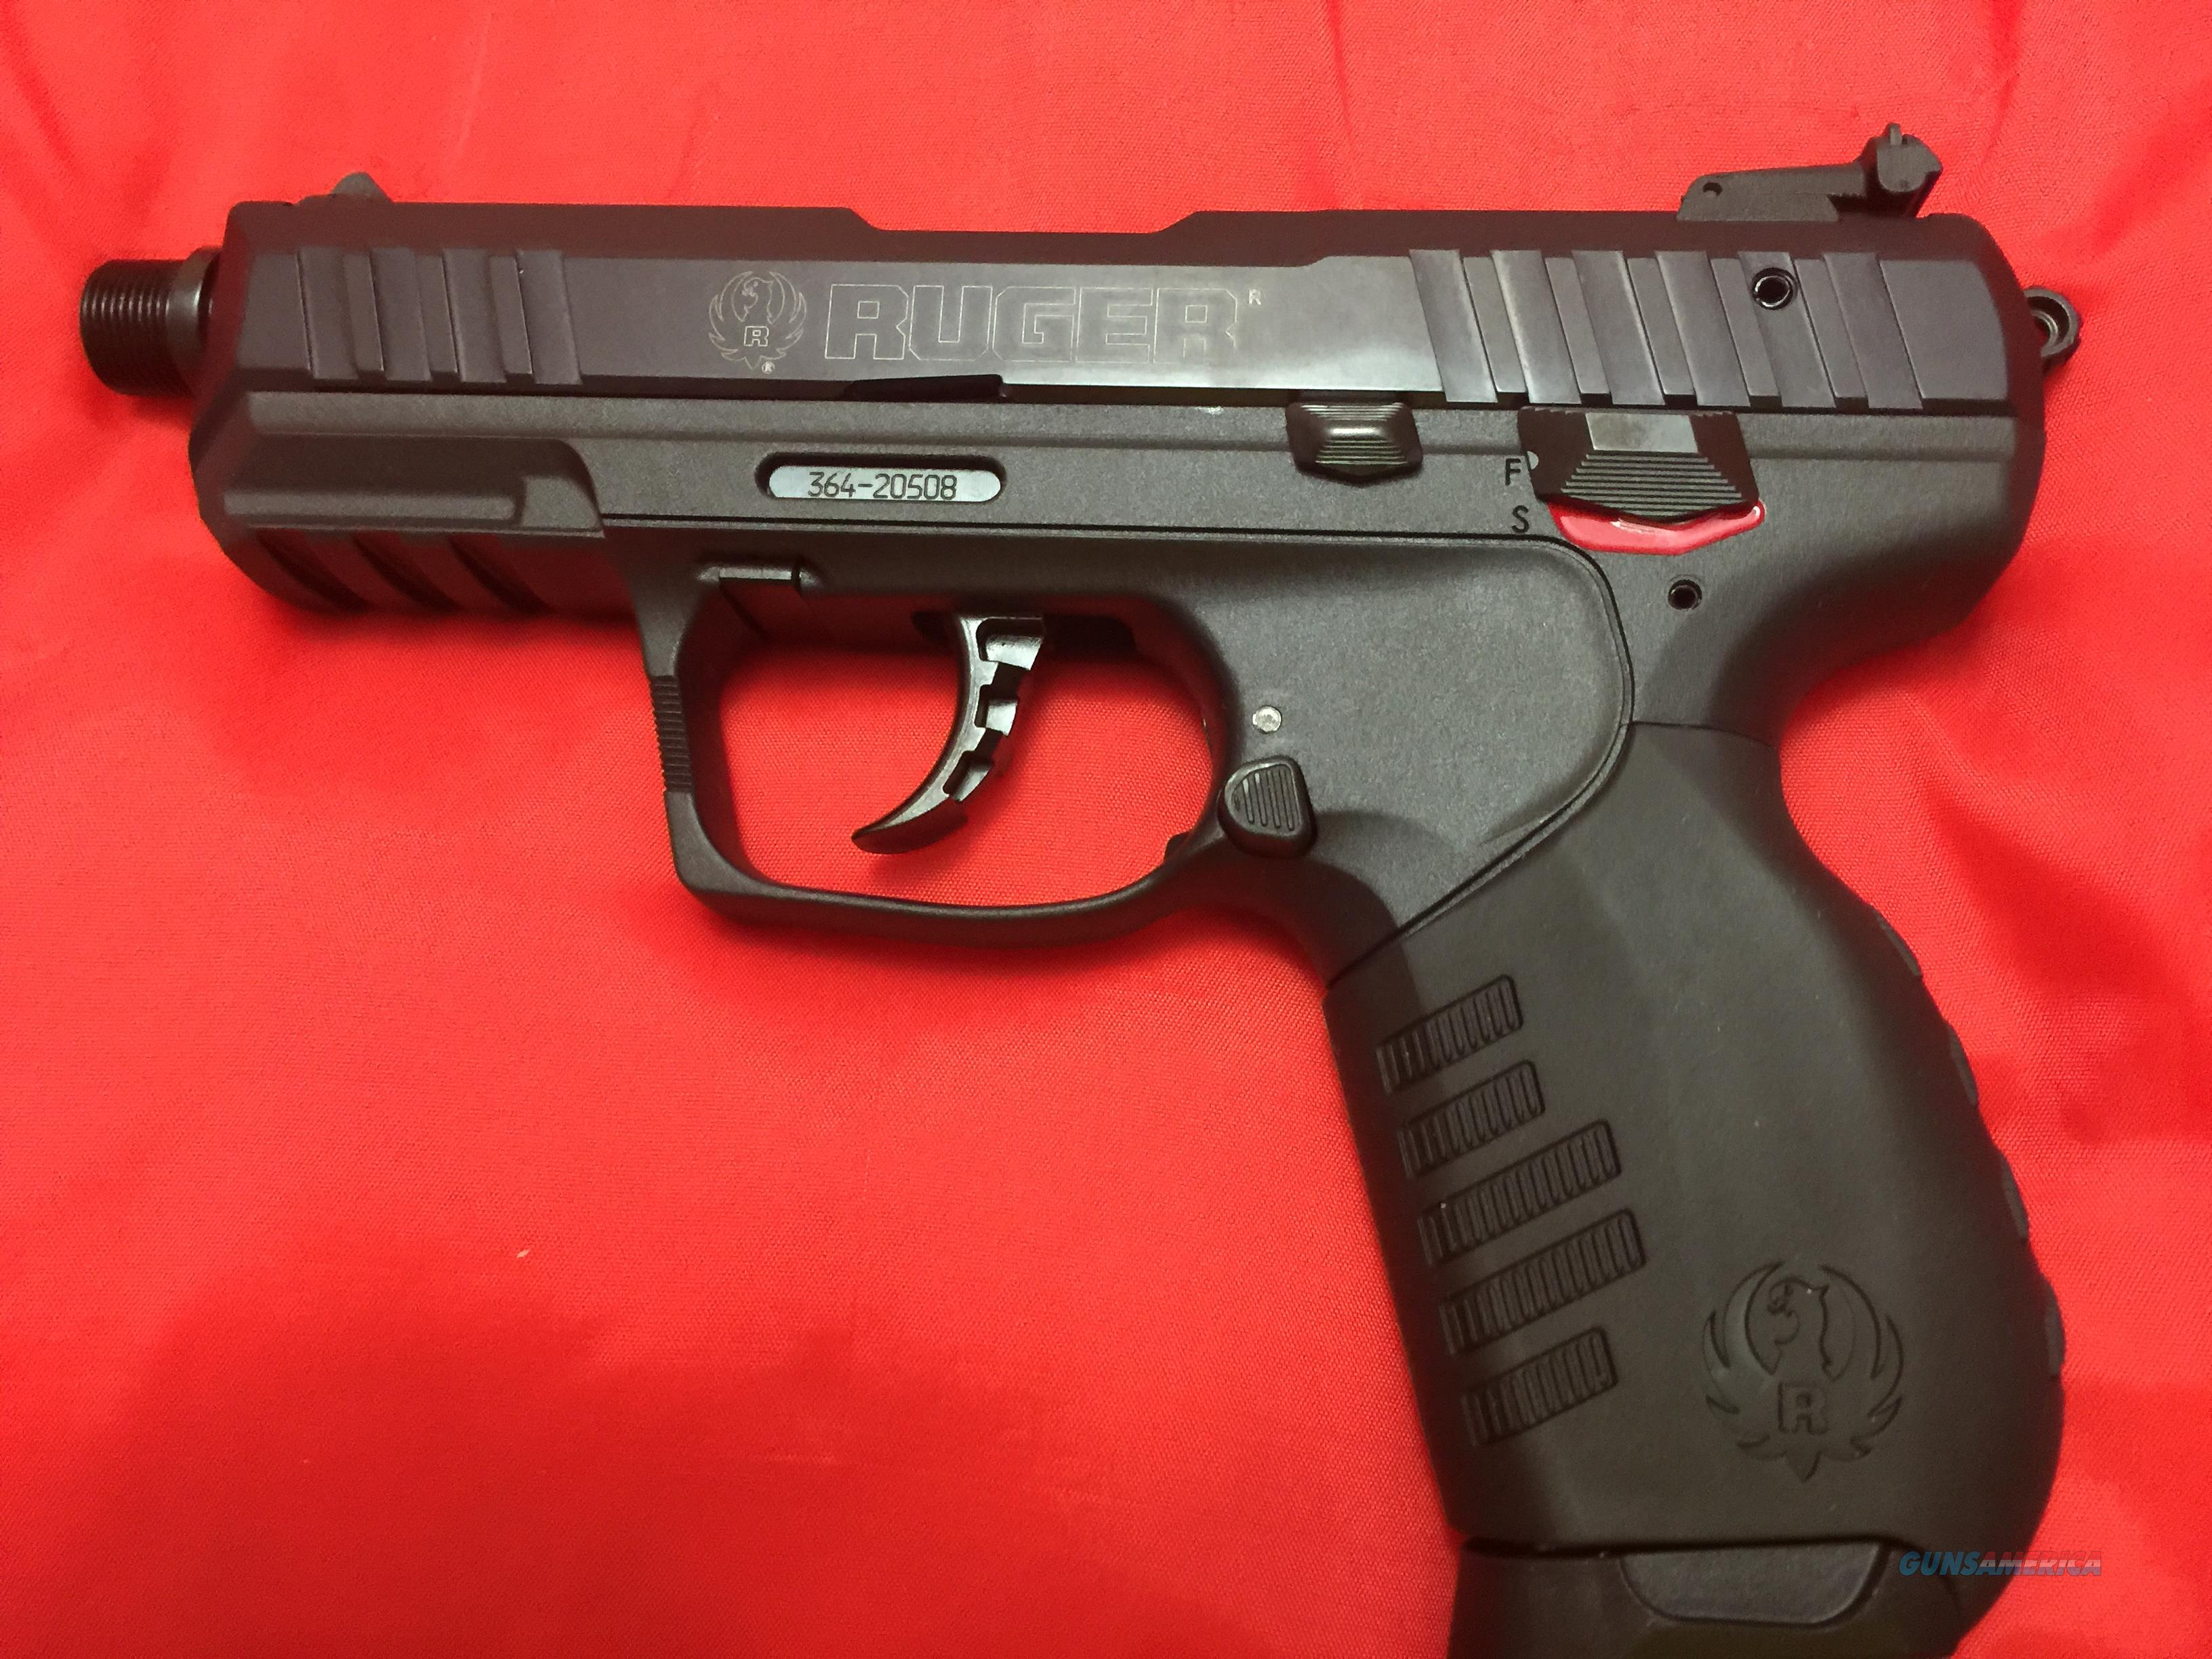 Ruger SR22 with Threaded Barrel and 2 magazines  Guns > Pistols > Ruger Semi-Auto Pistols > SR Family > SR22